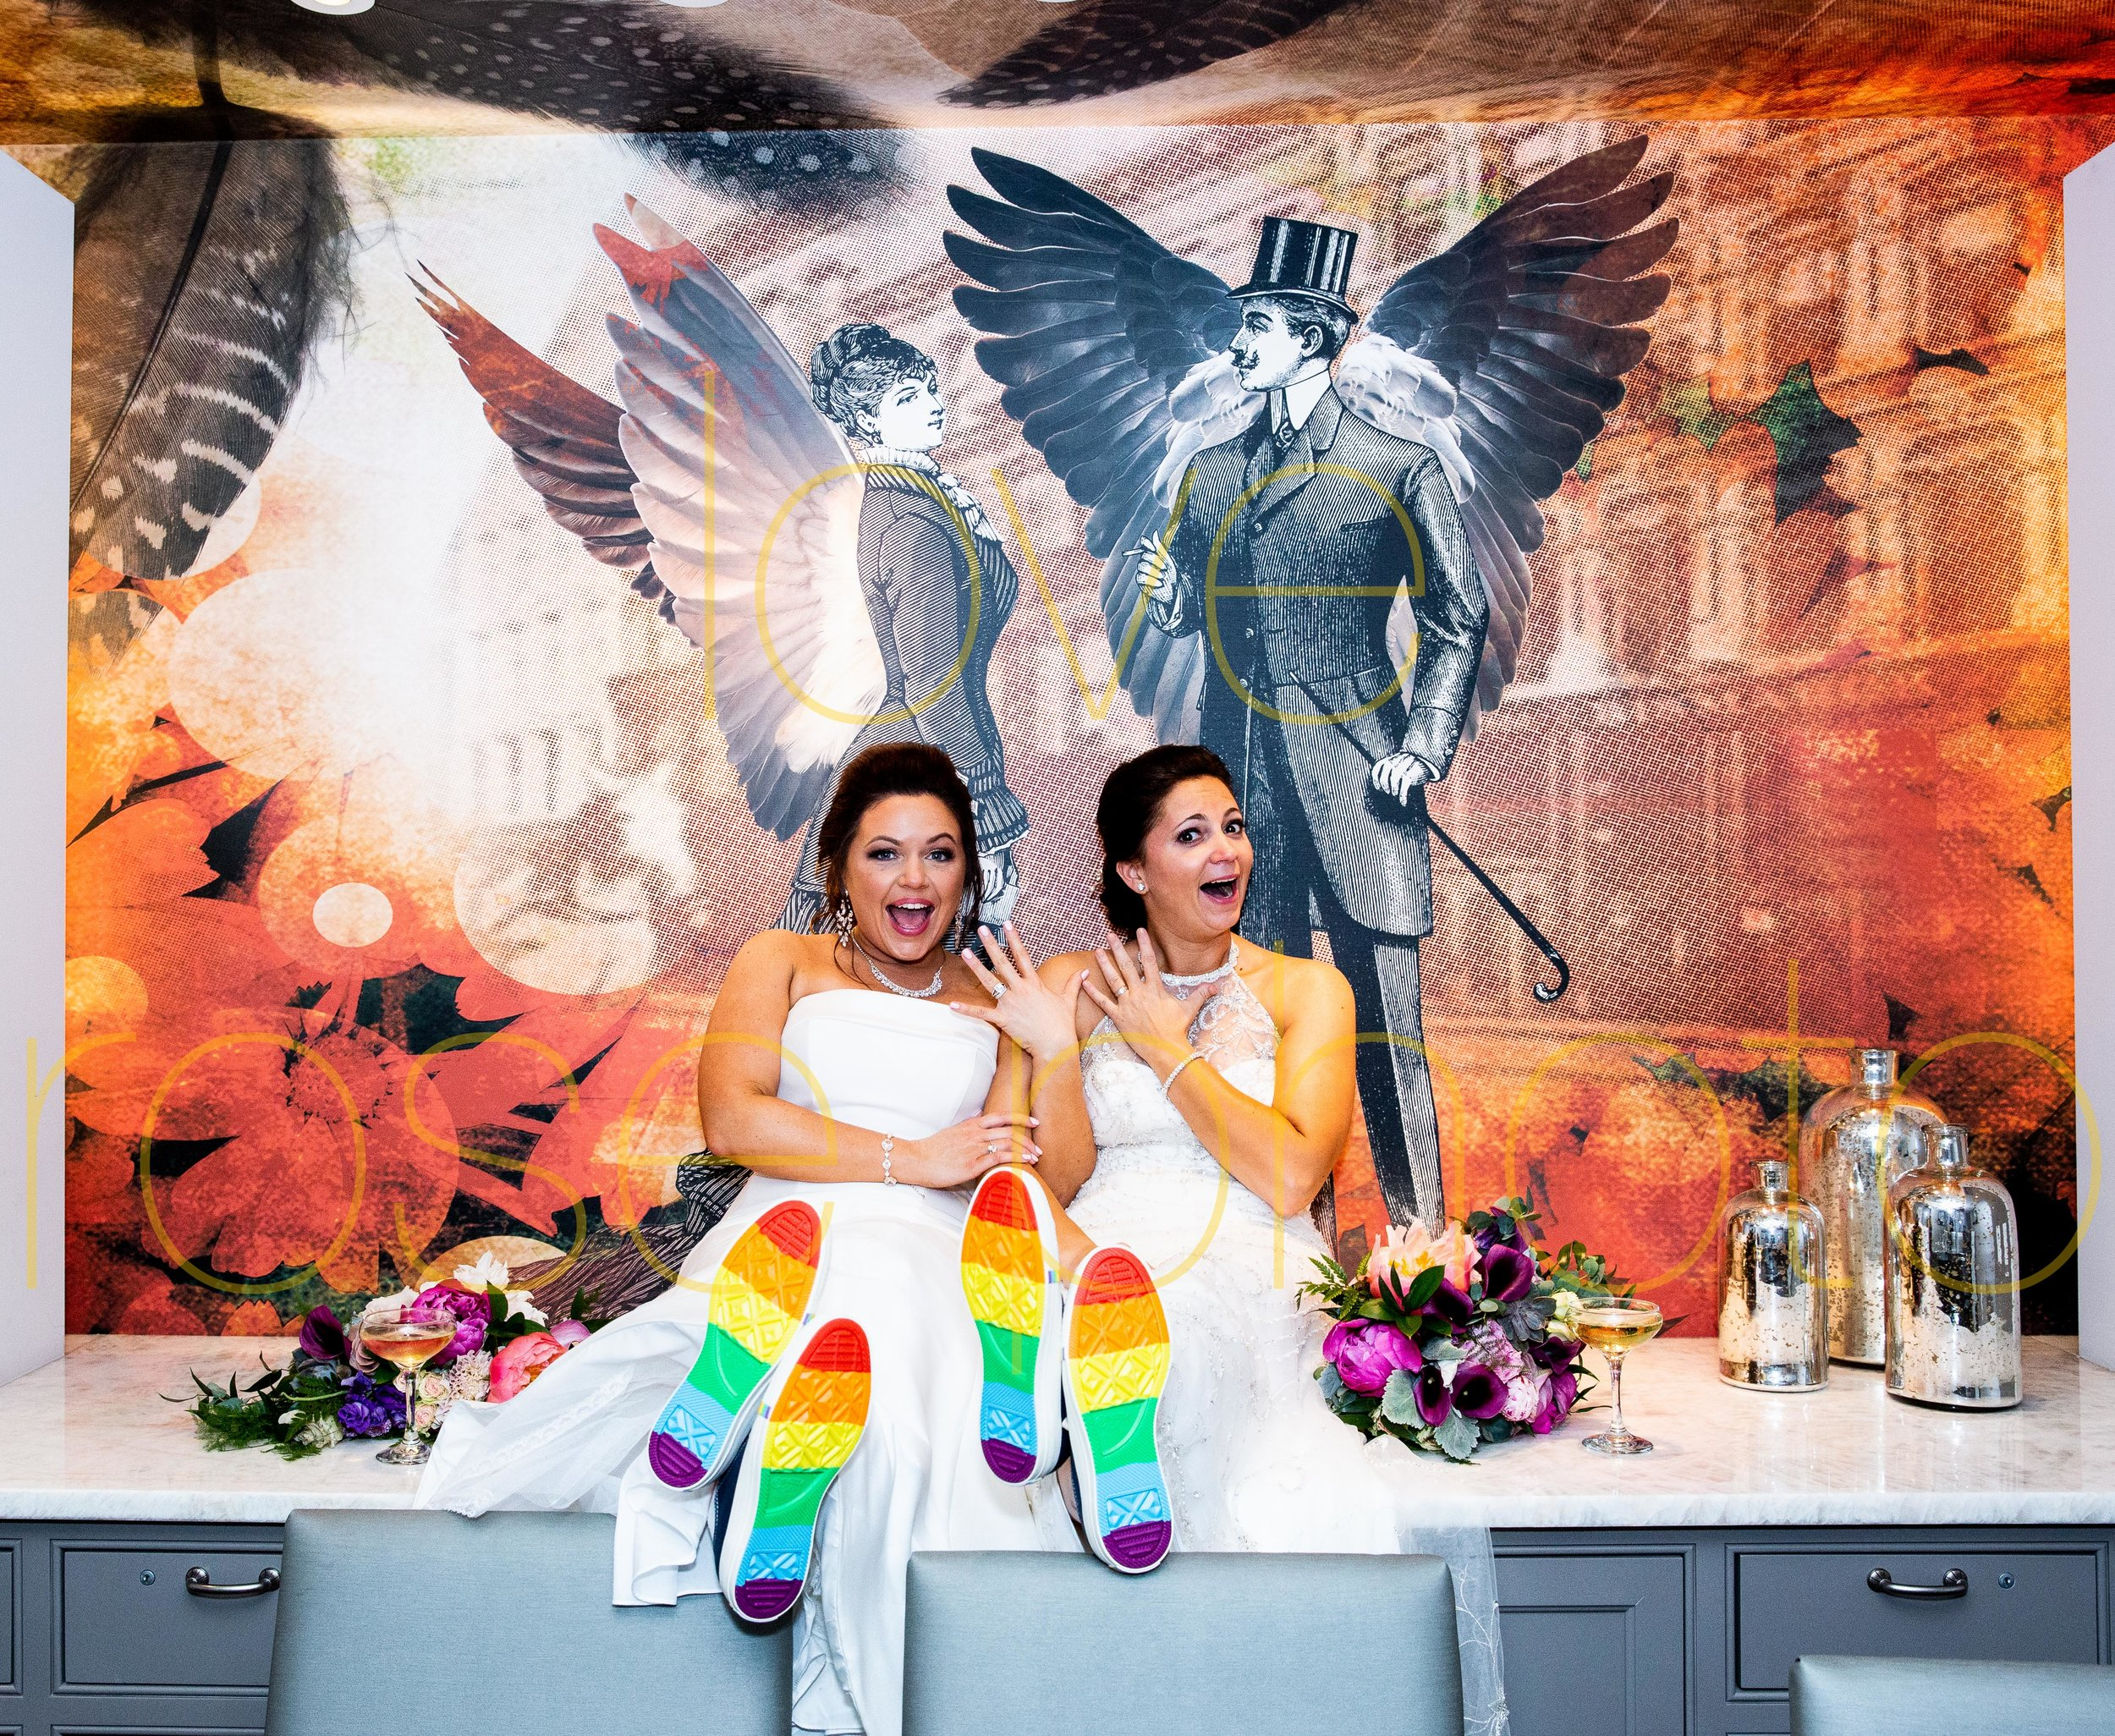 sophie + melissa love rose photo gay wedding chicago pride 2019 -65.jpg